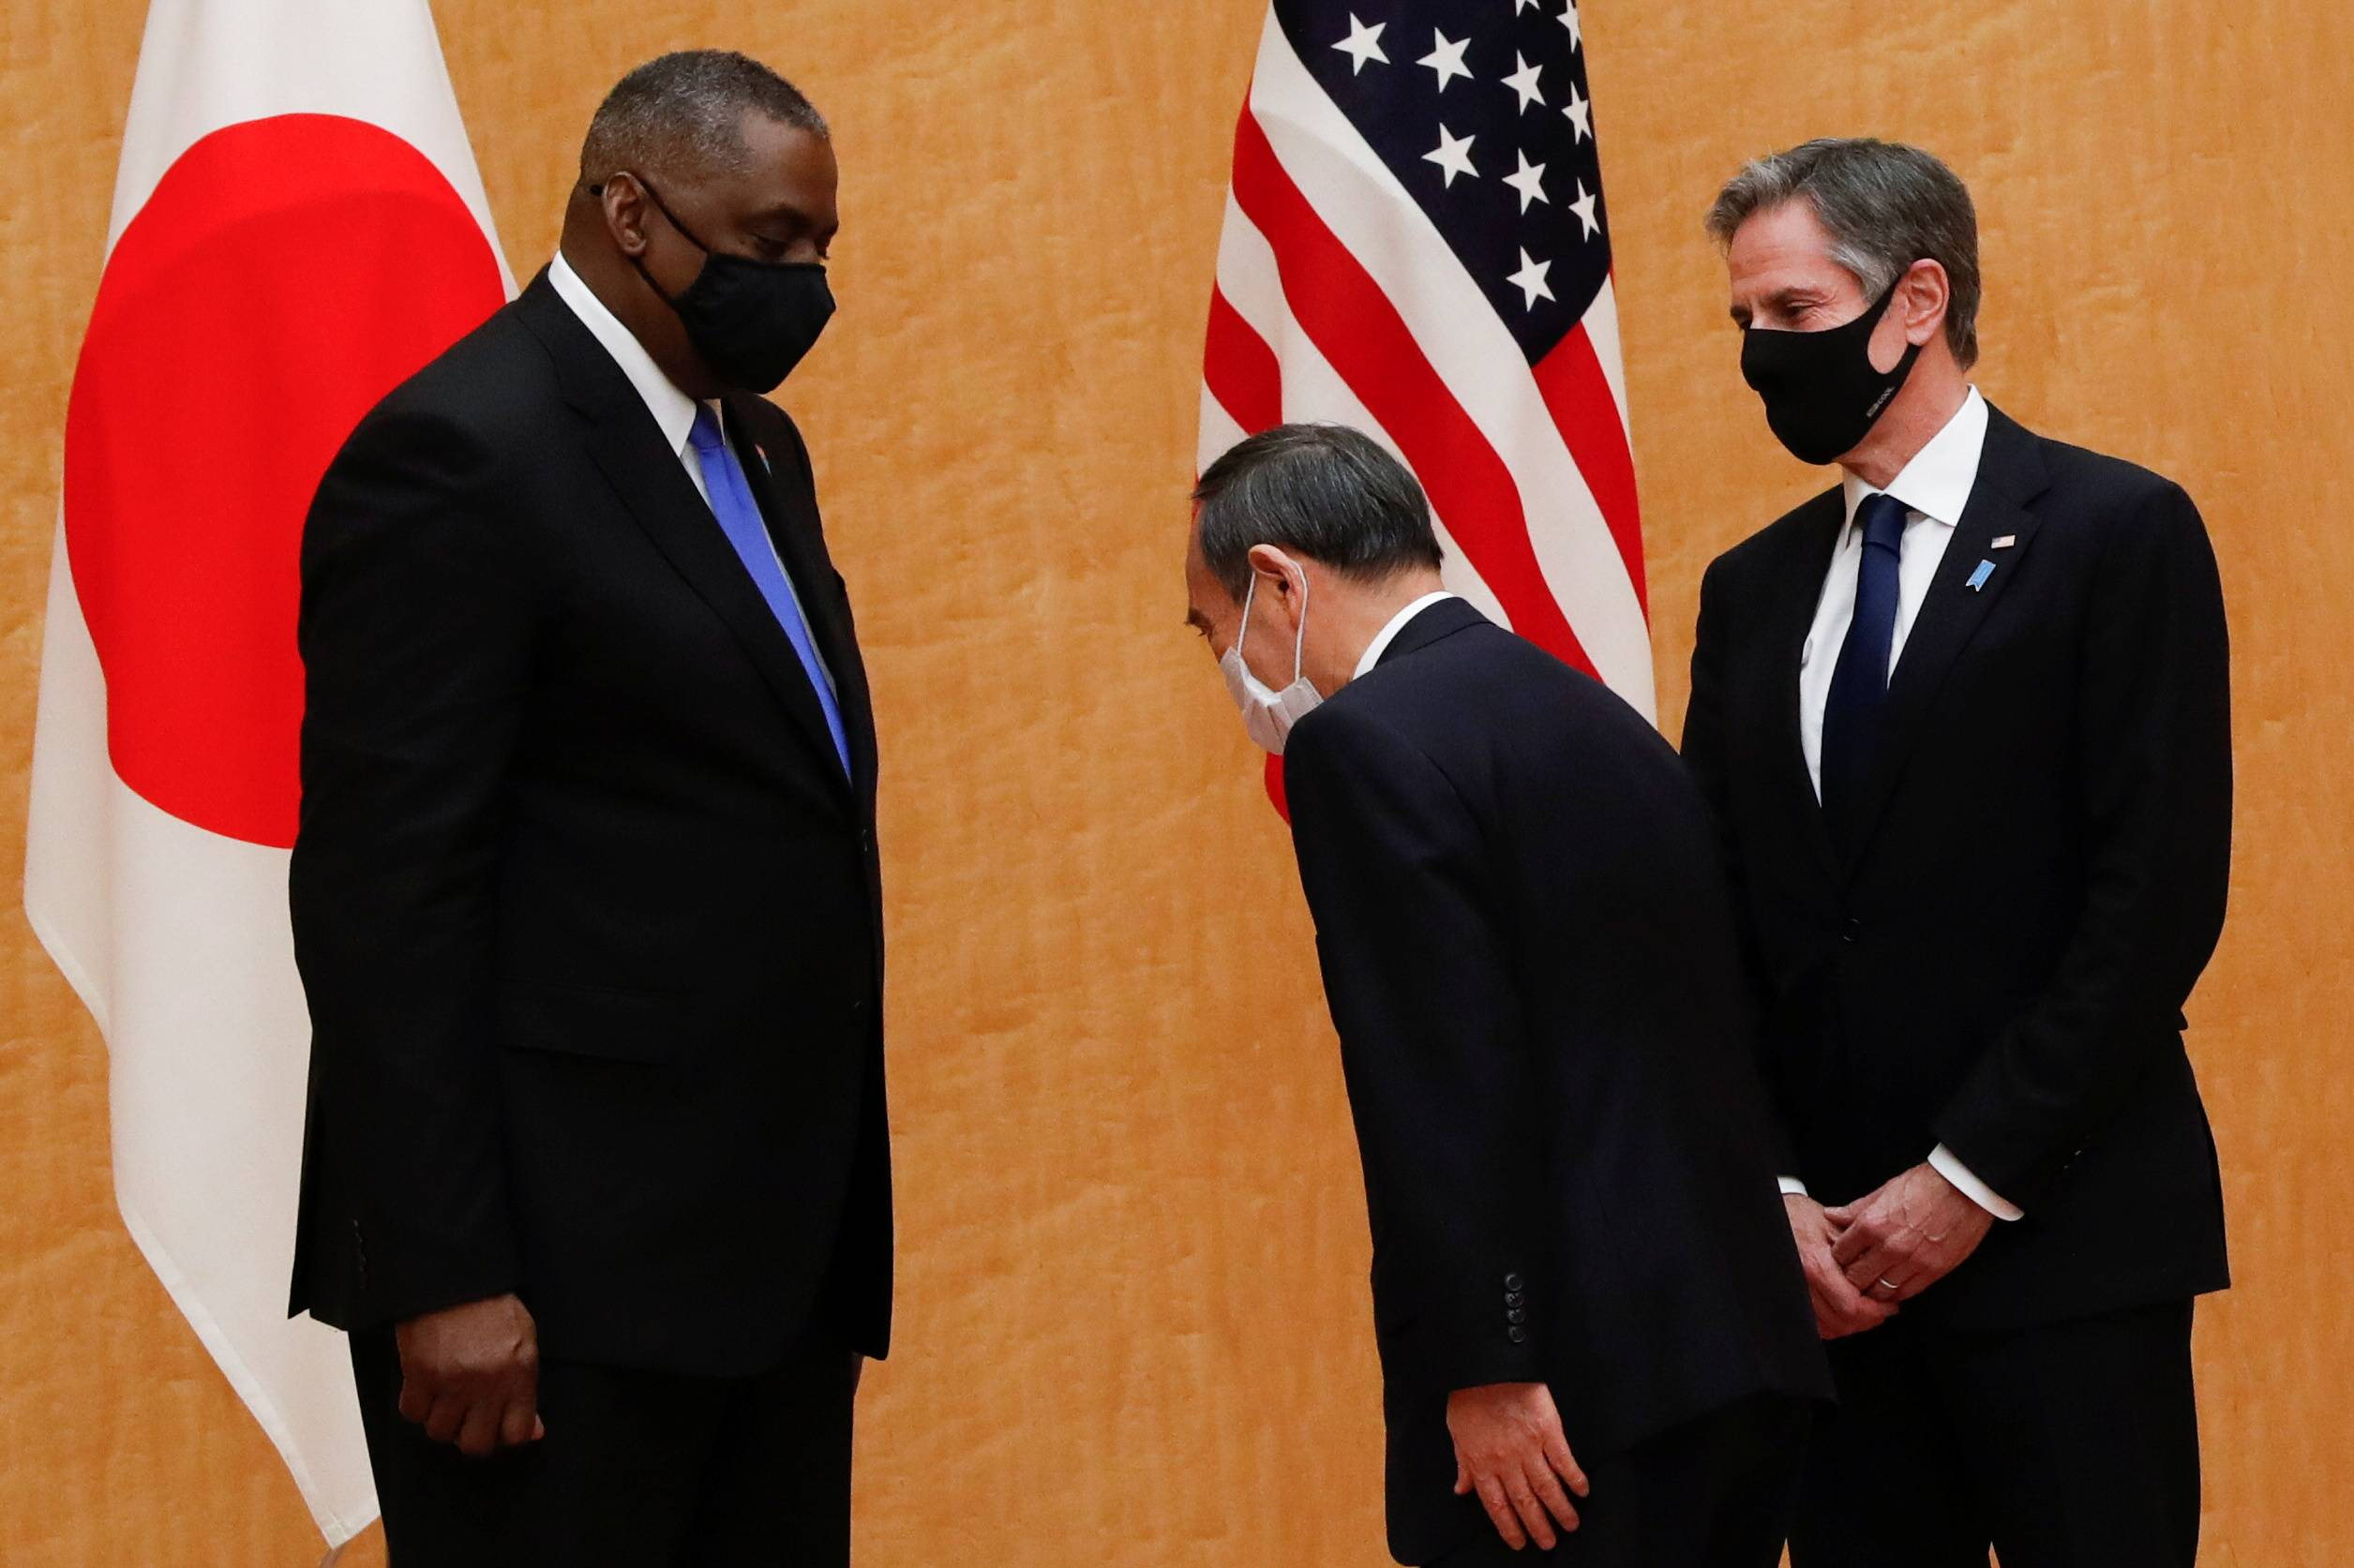 U.S. Secretary of State Antony Blinken and Defense Secretary Lloyd Austin meet with Prime Minister Yoshihide Suga (center) at his office in Tokyo on Tuesday. | POOL / VIA REUTERS